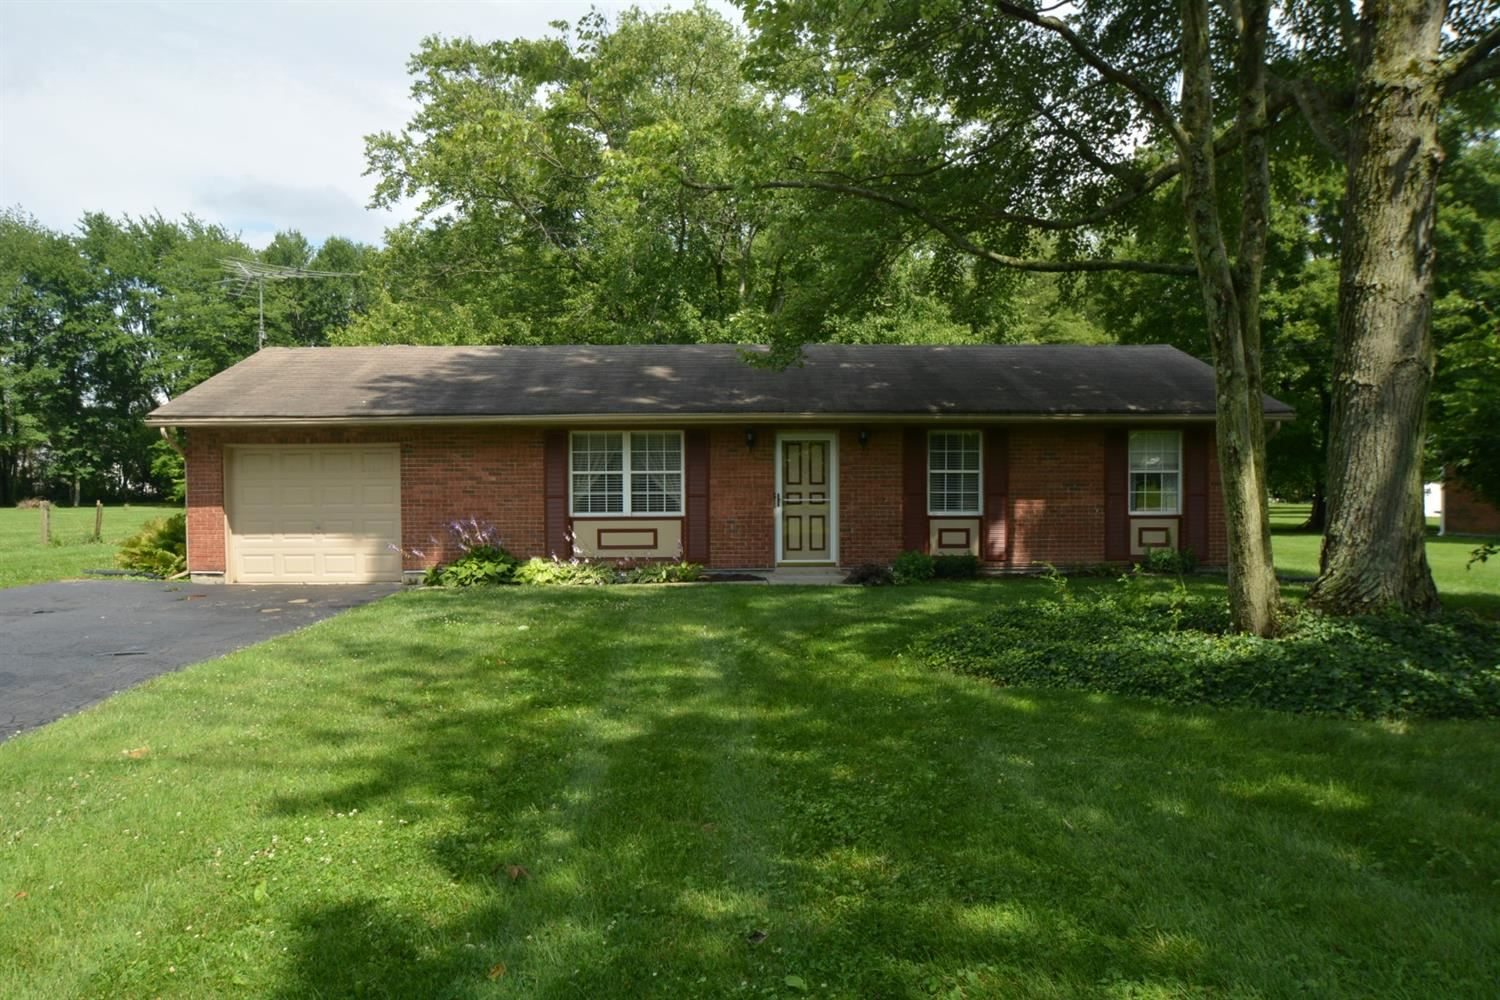 6182 Winding Way, Maineville, OH 45039 - #: 1707901